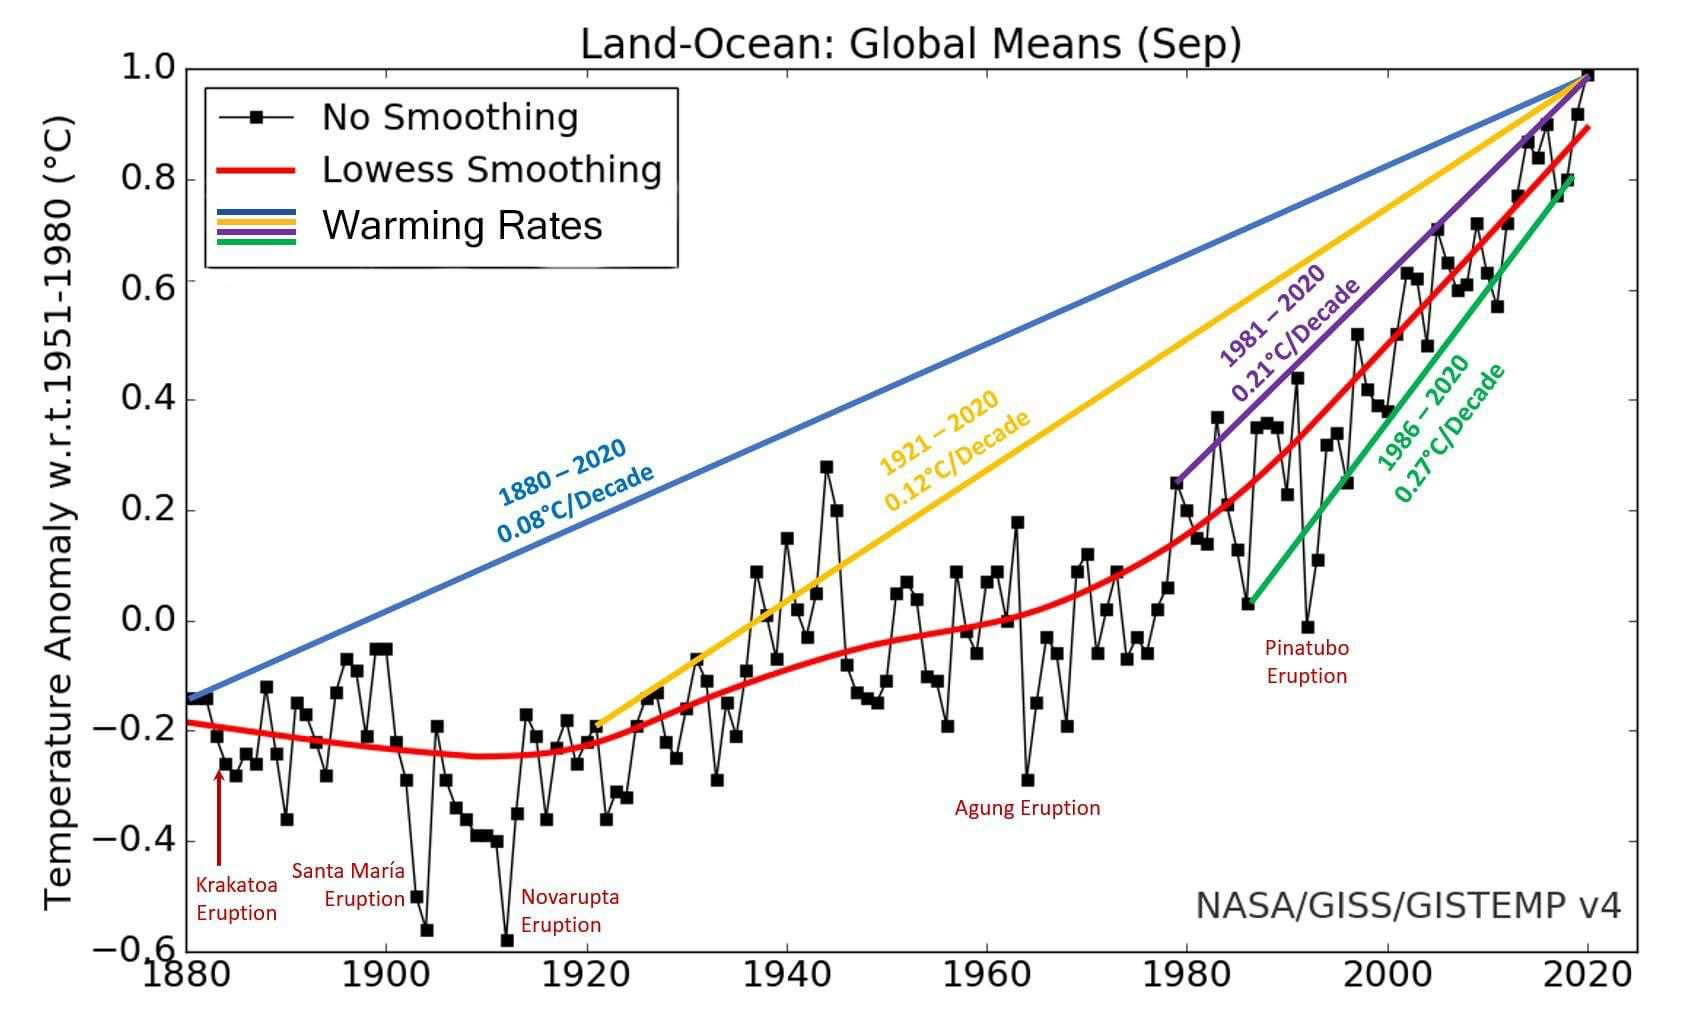 Graph of Mean temperatures from 1880 to present.